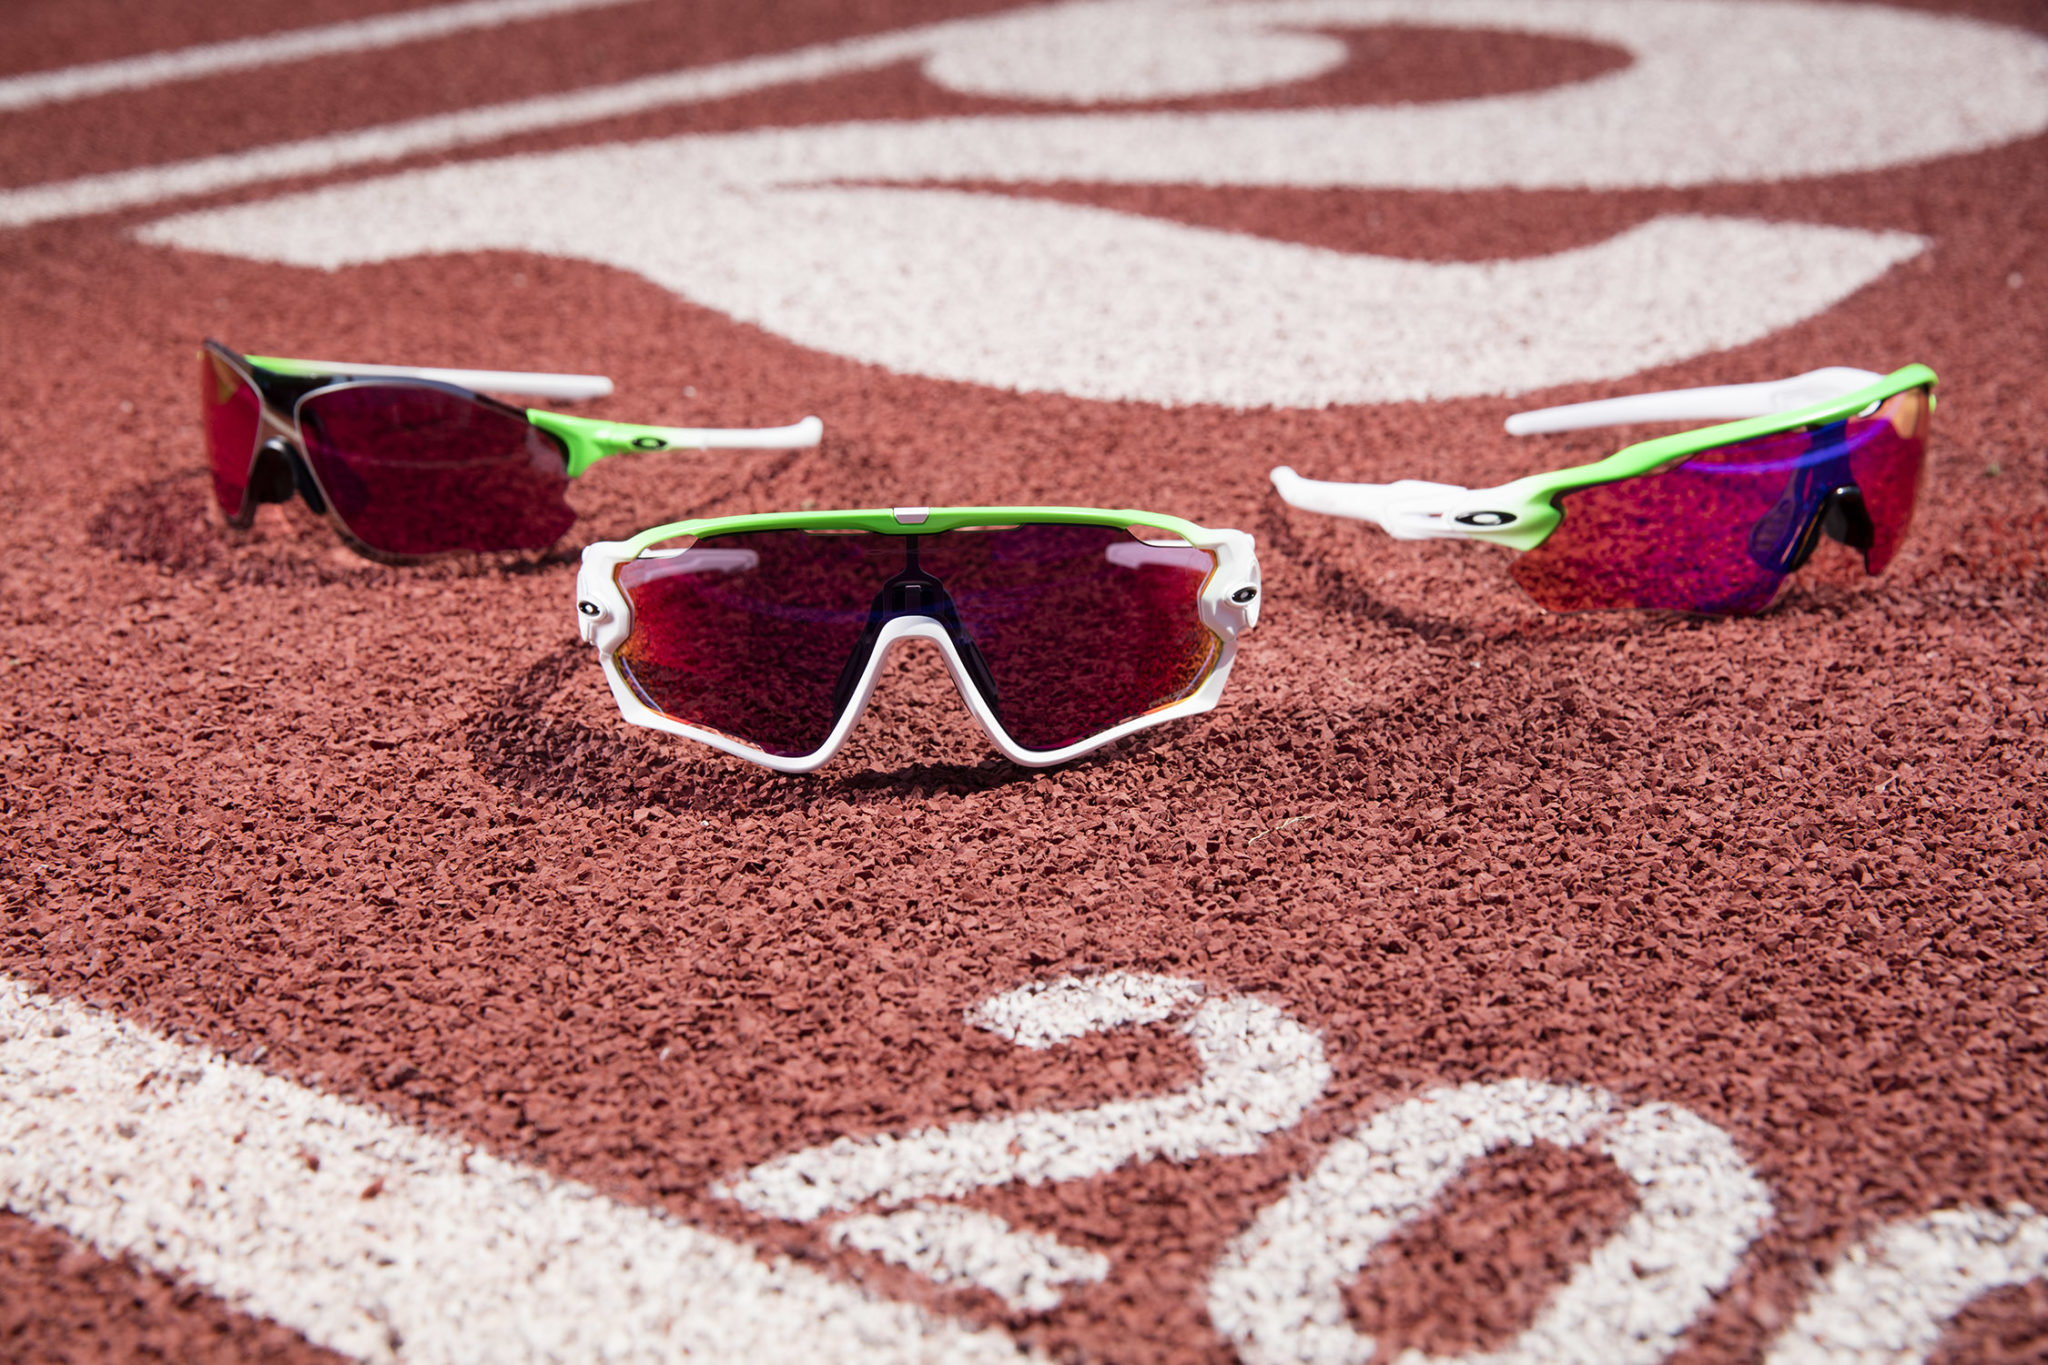 Oakley-Green-Fade-Collection_Product-in-Environment_3